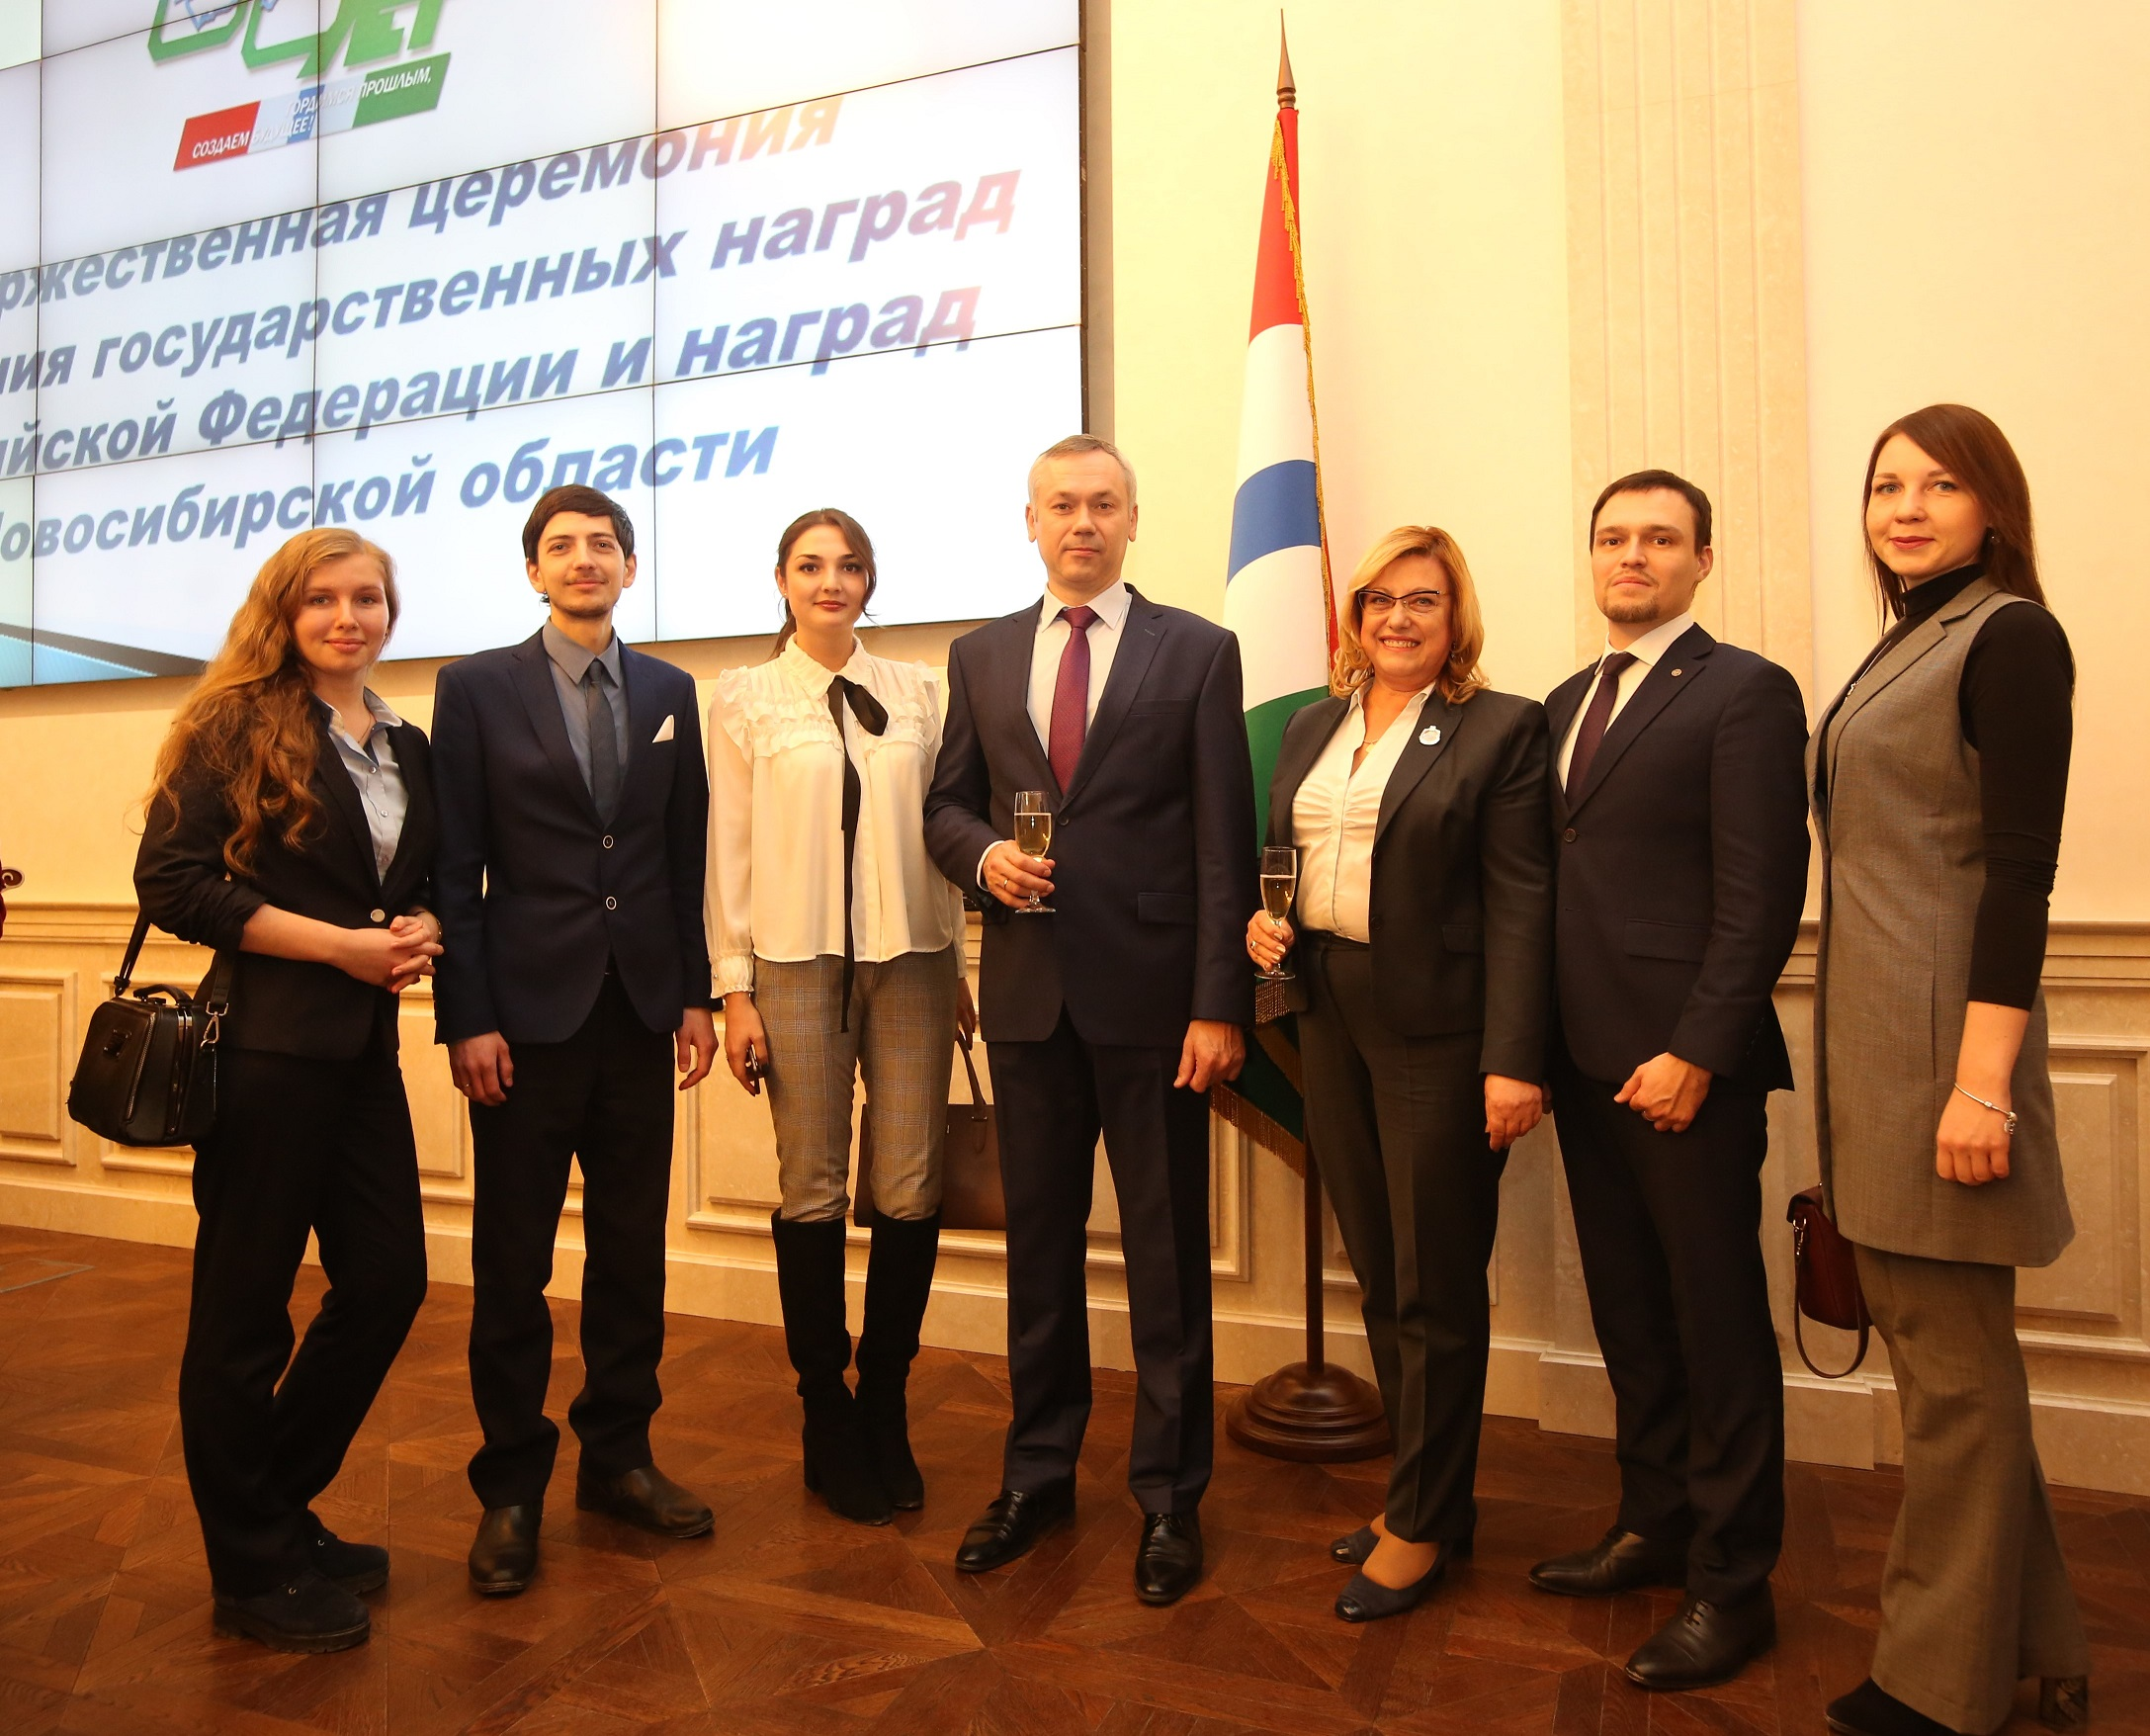 Lexprof manager partner Tatyana Goncharova is Honored Lawyer of the Novosibirsk region